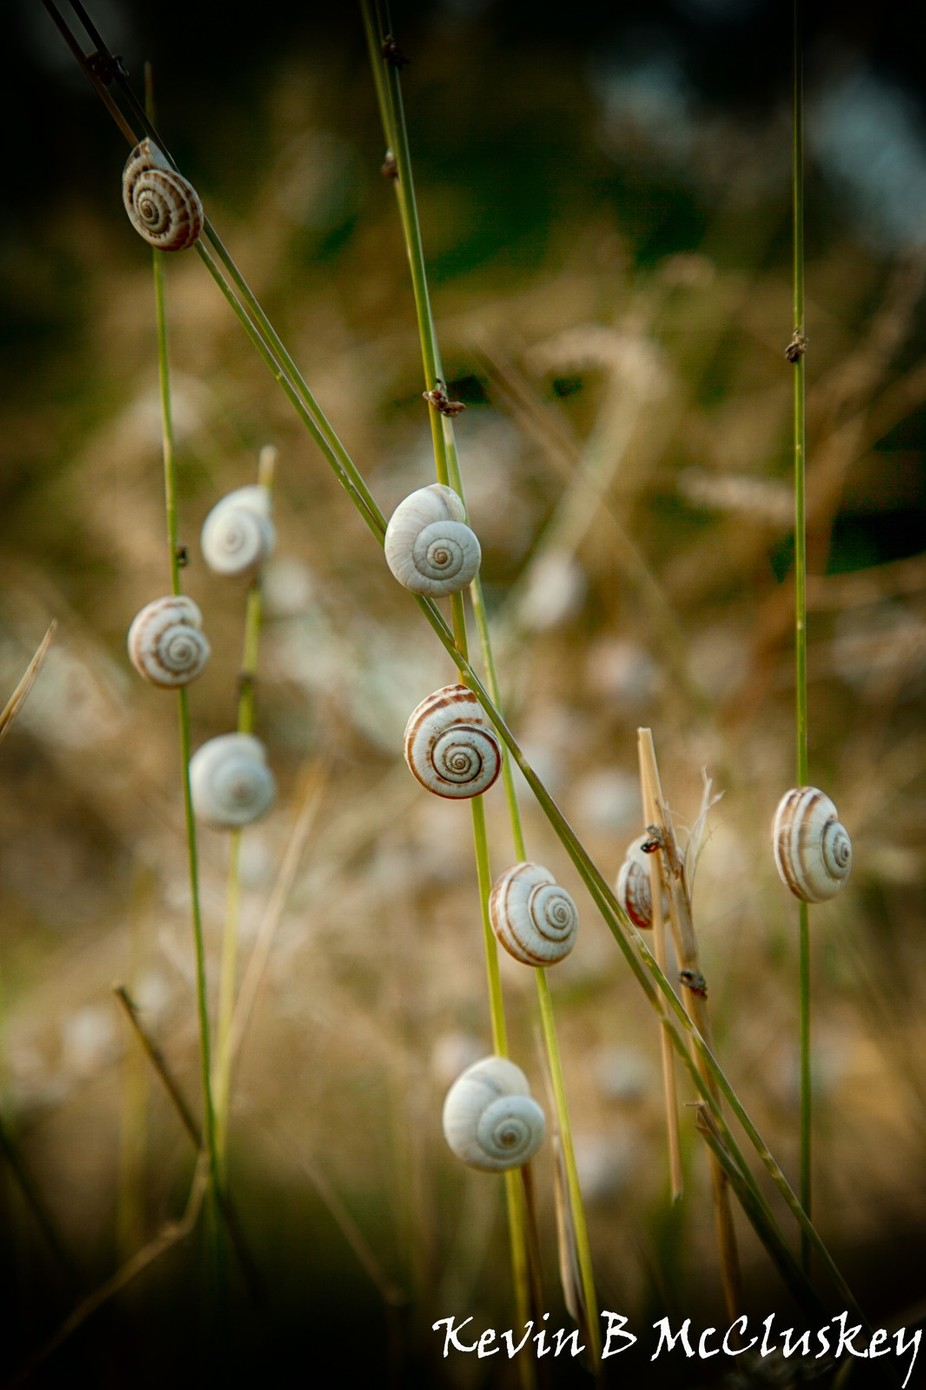 Snails in the Feild by Kevin-B-McCluskey - Depth In Nature Photo Contest